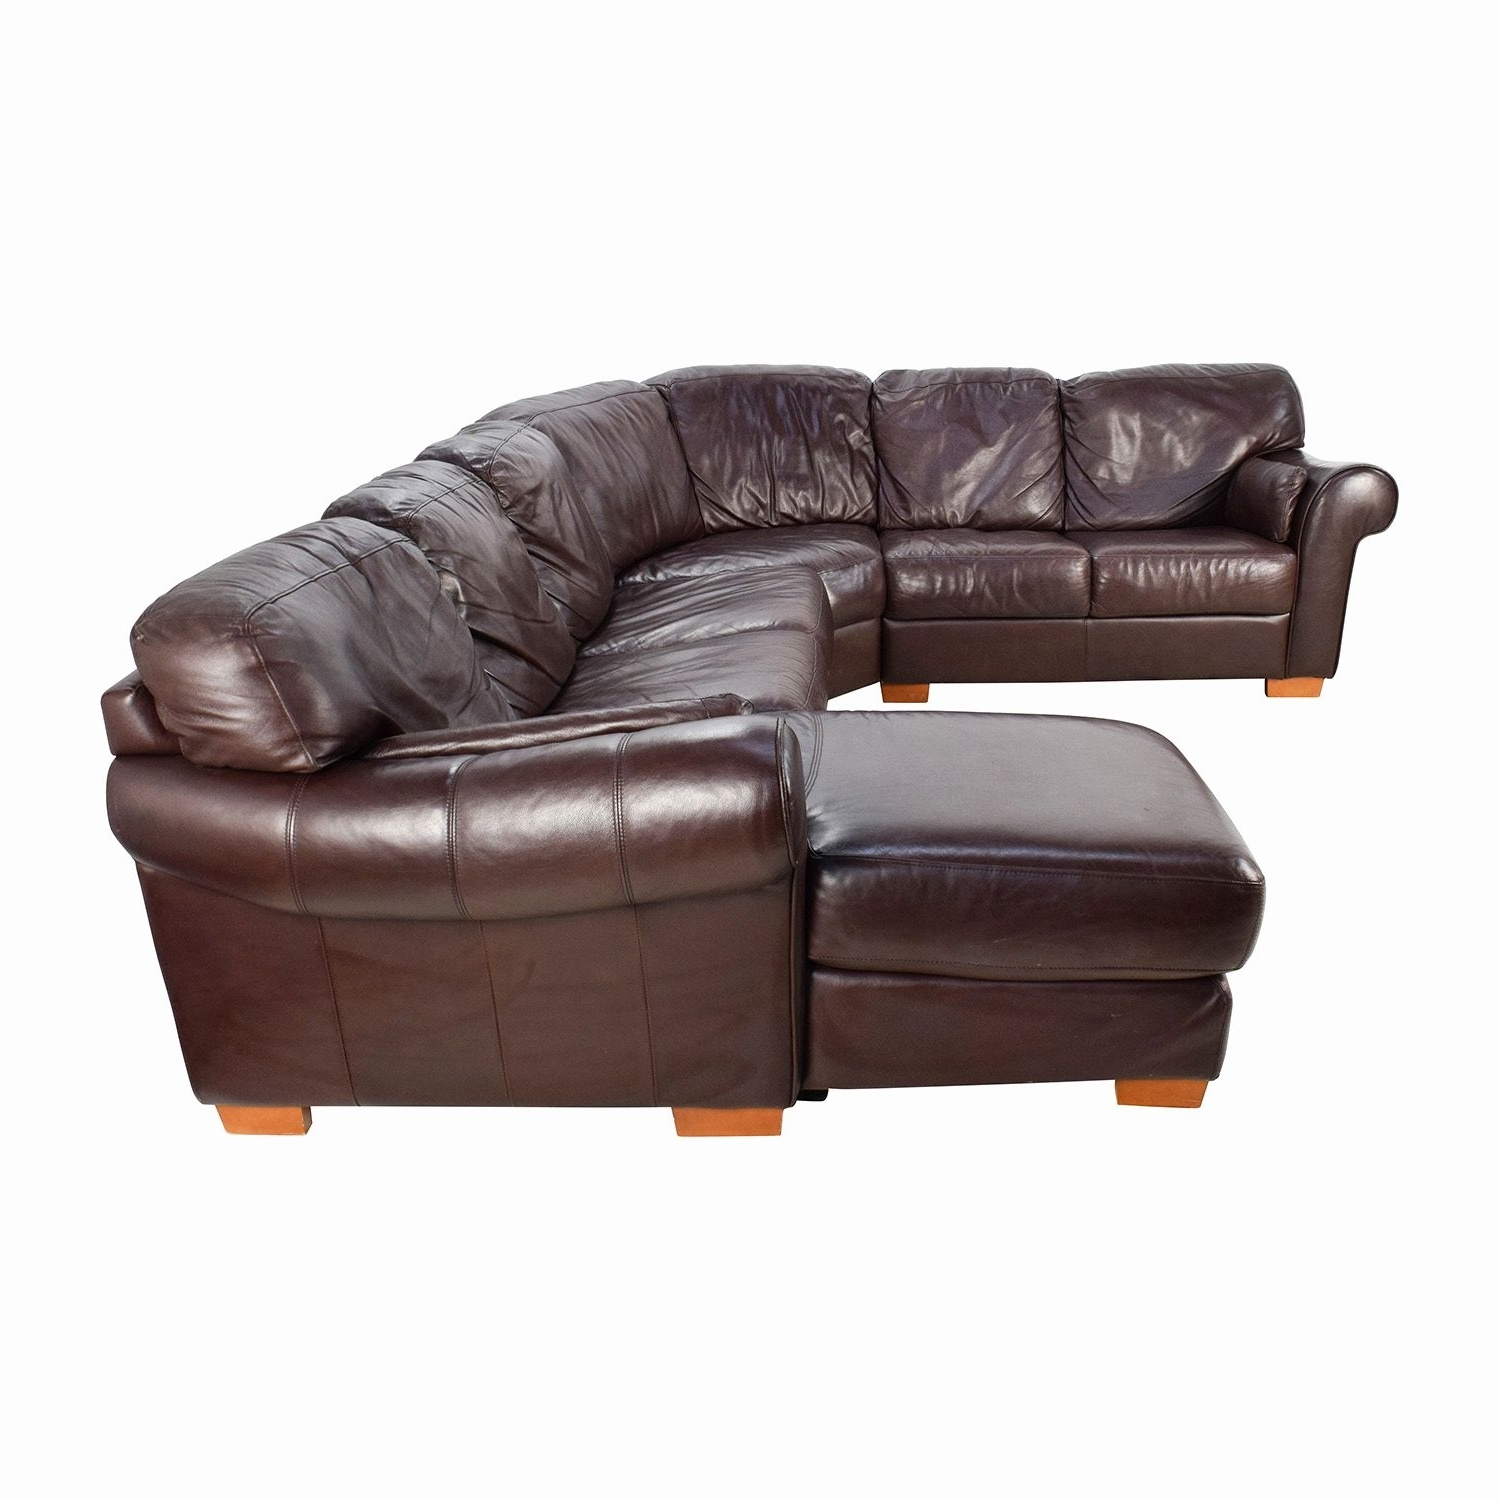 Well Known Raymour And Flanigan Sectional Sofas With Appealing Raymour And Flanigan Sectional Sofas U Couches For Chair (View 7 of 15)